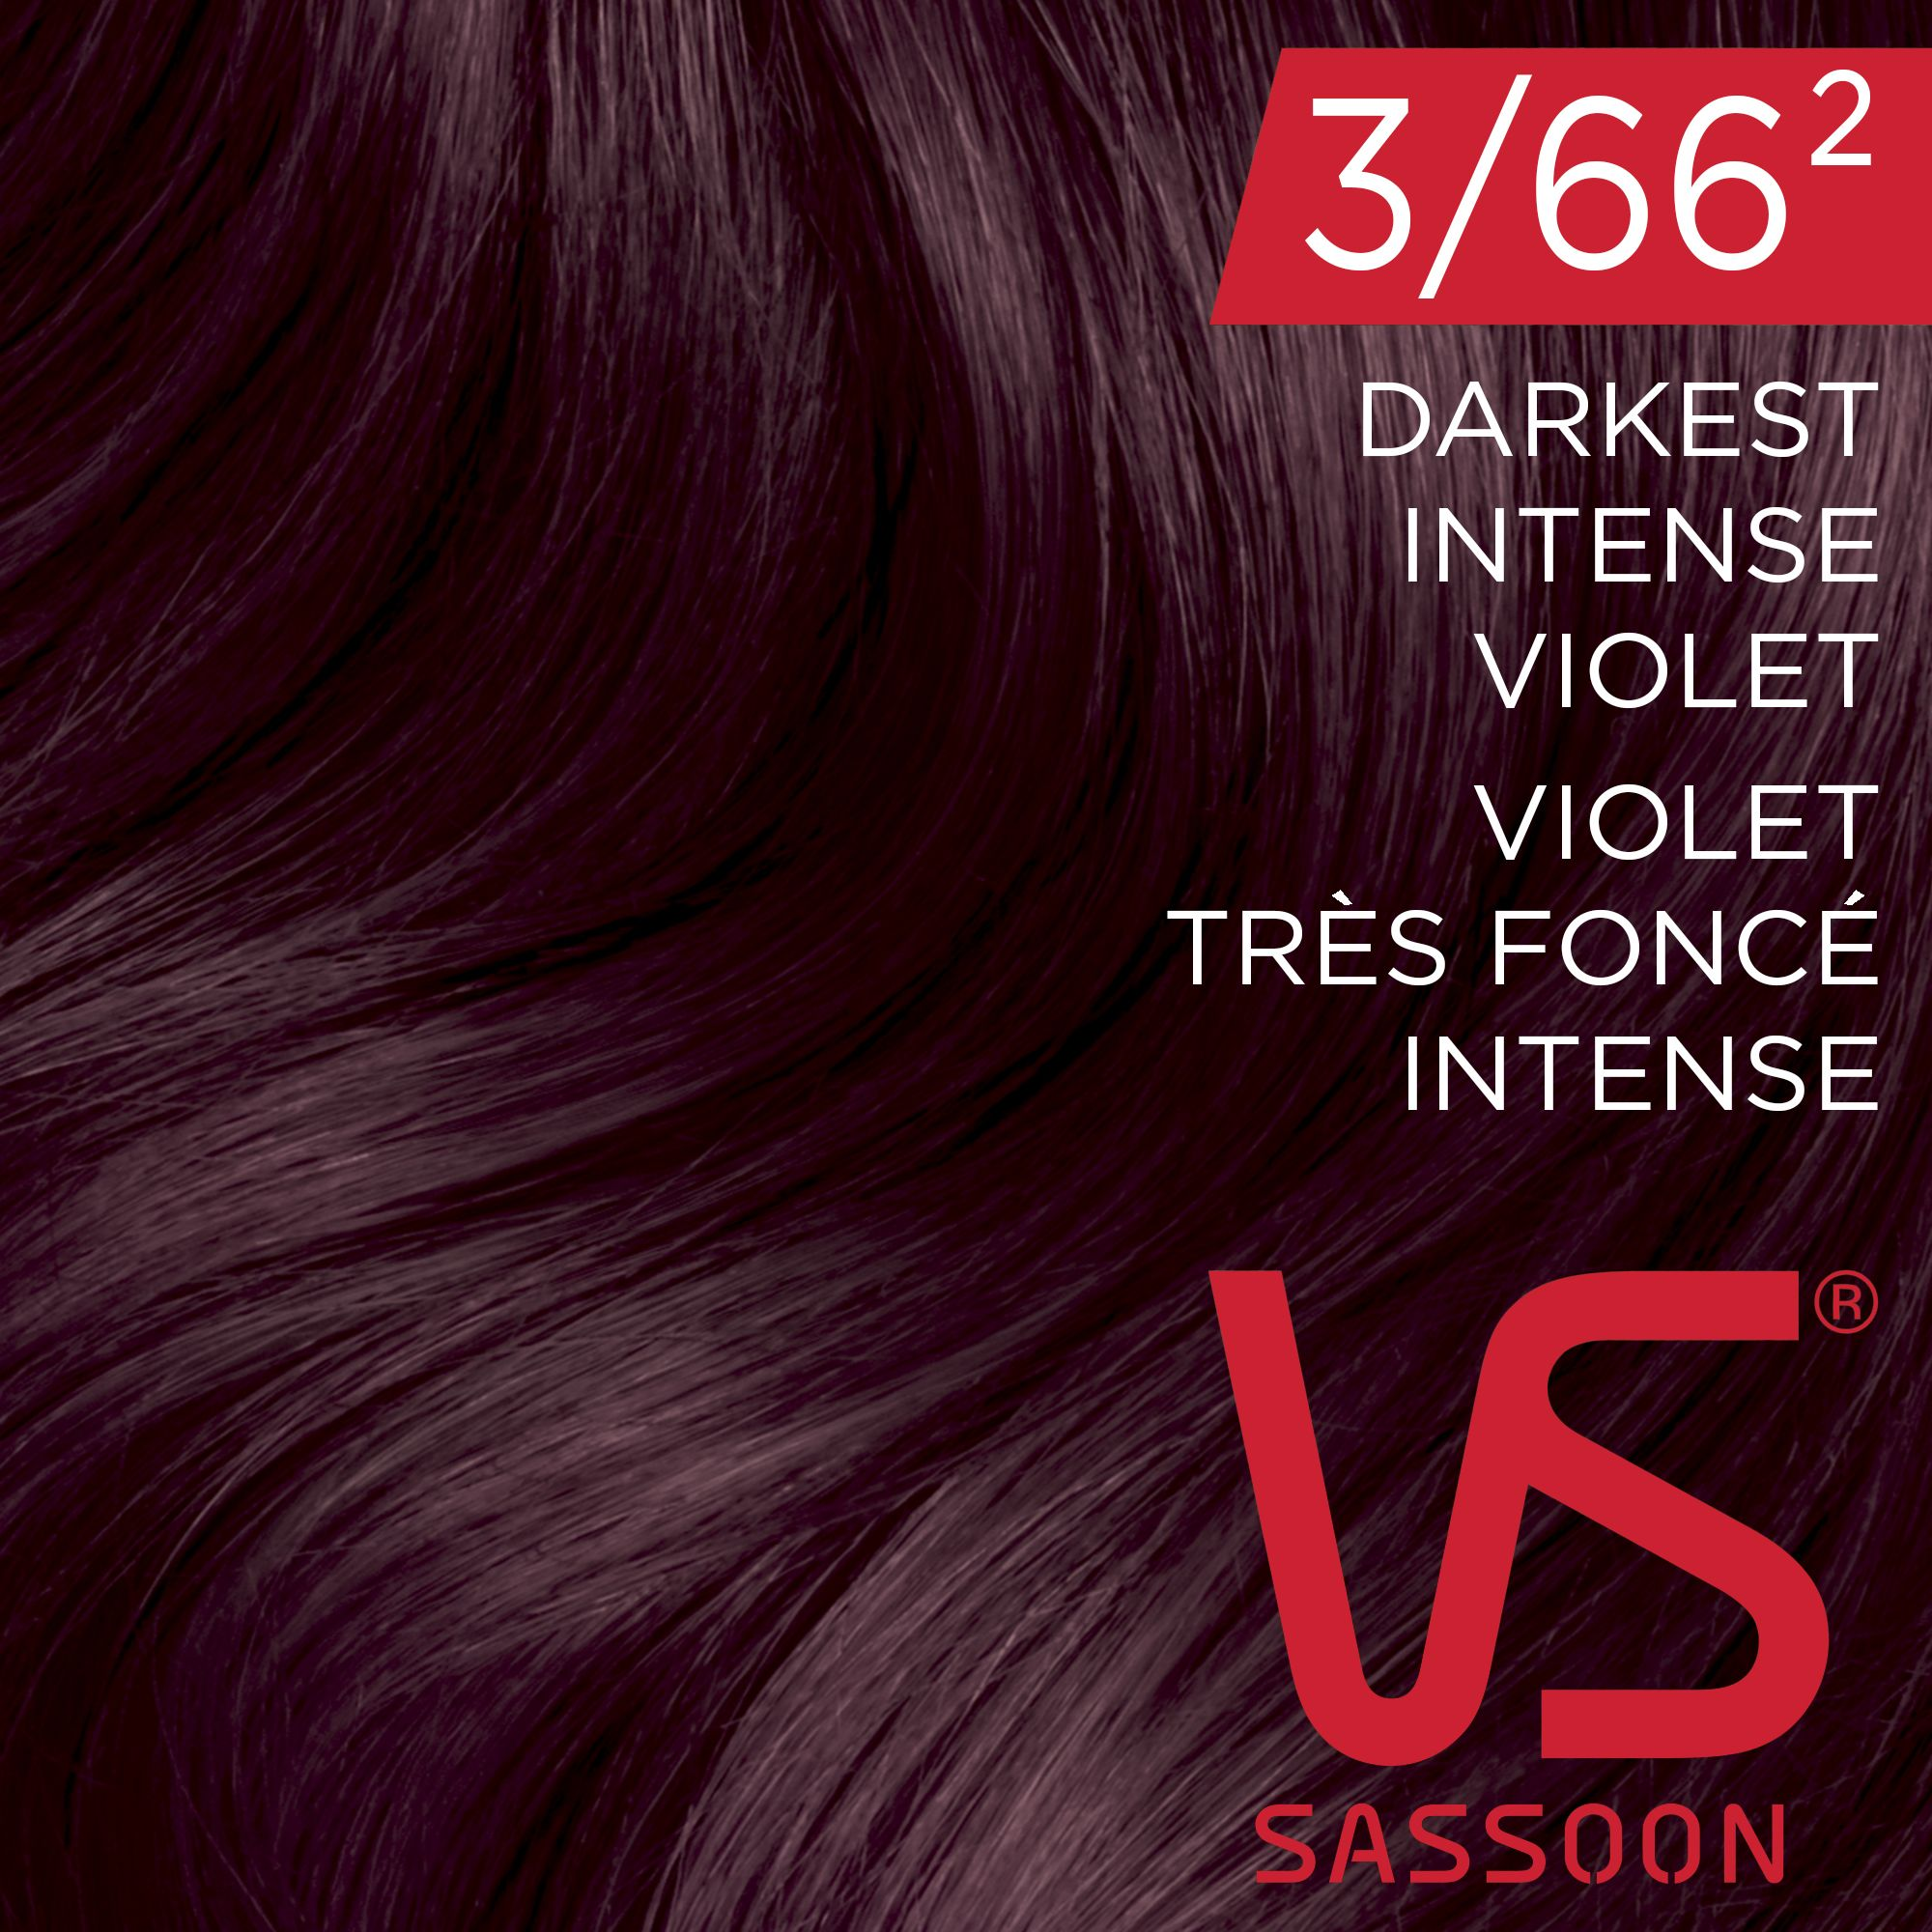 DIY Purple hair color: Vidal Sassoon Salonist 3/662 DARKEST INTENSE VIOLET  Deep amethyst. Aubergine ...